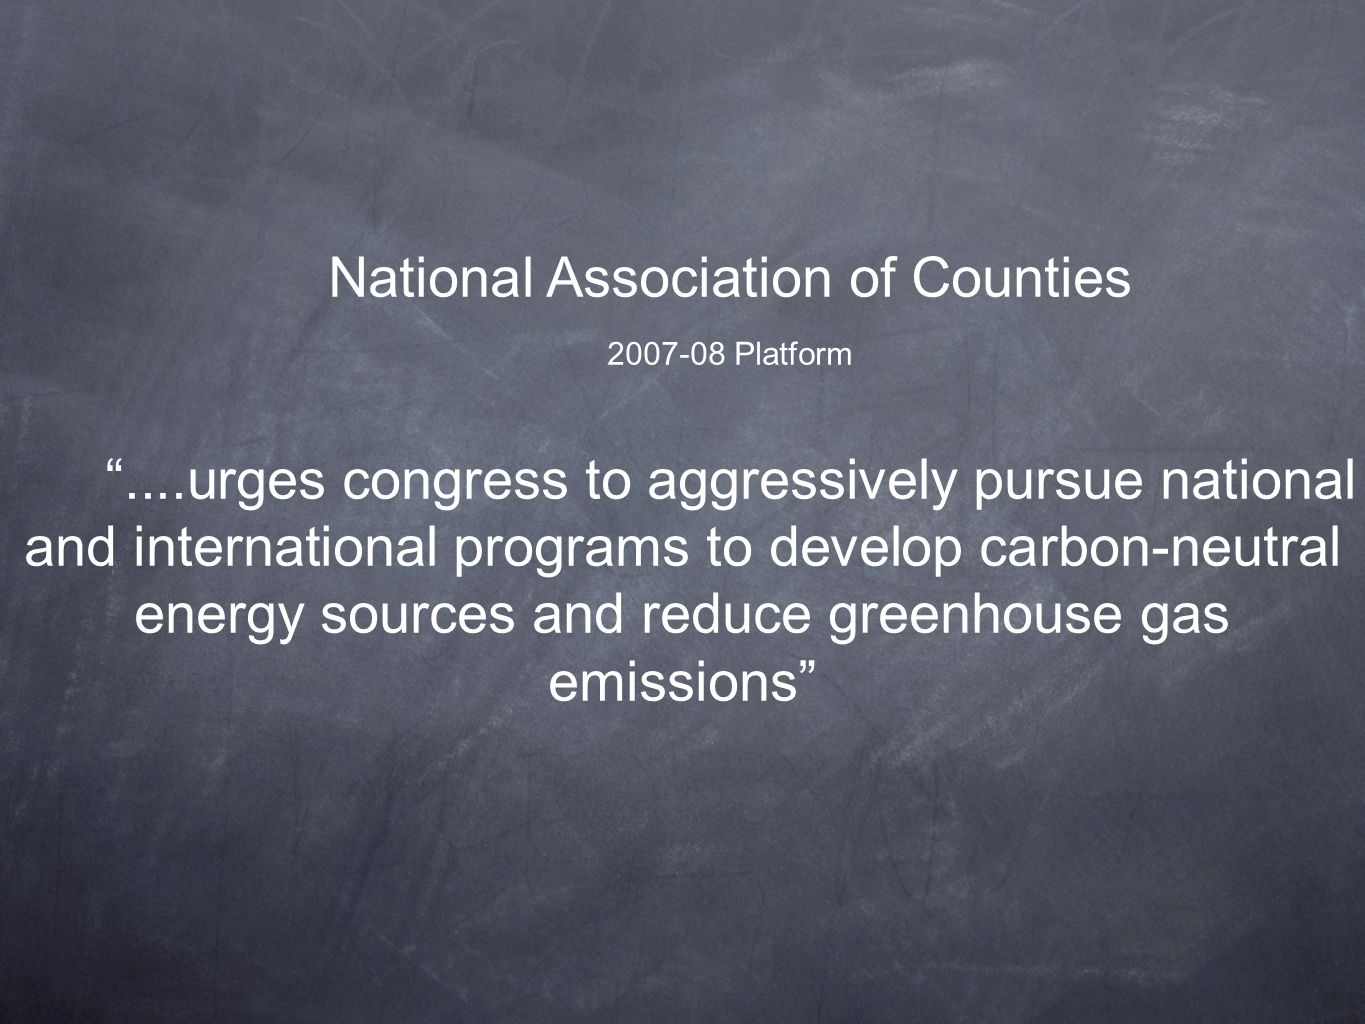 National Association of Counties 2007-08 Platform....urges congress to aggressively pursue national and international programs to develop carbon-neutral energy sources and reduce greenhouse gas emissions